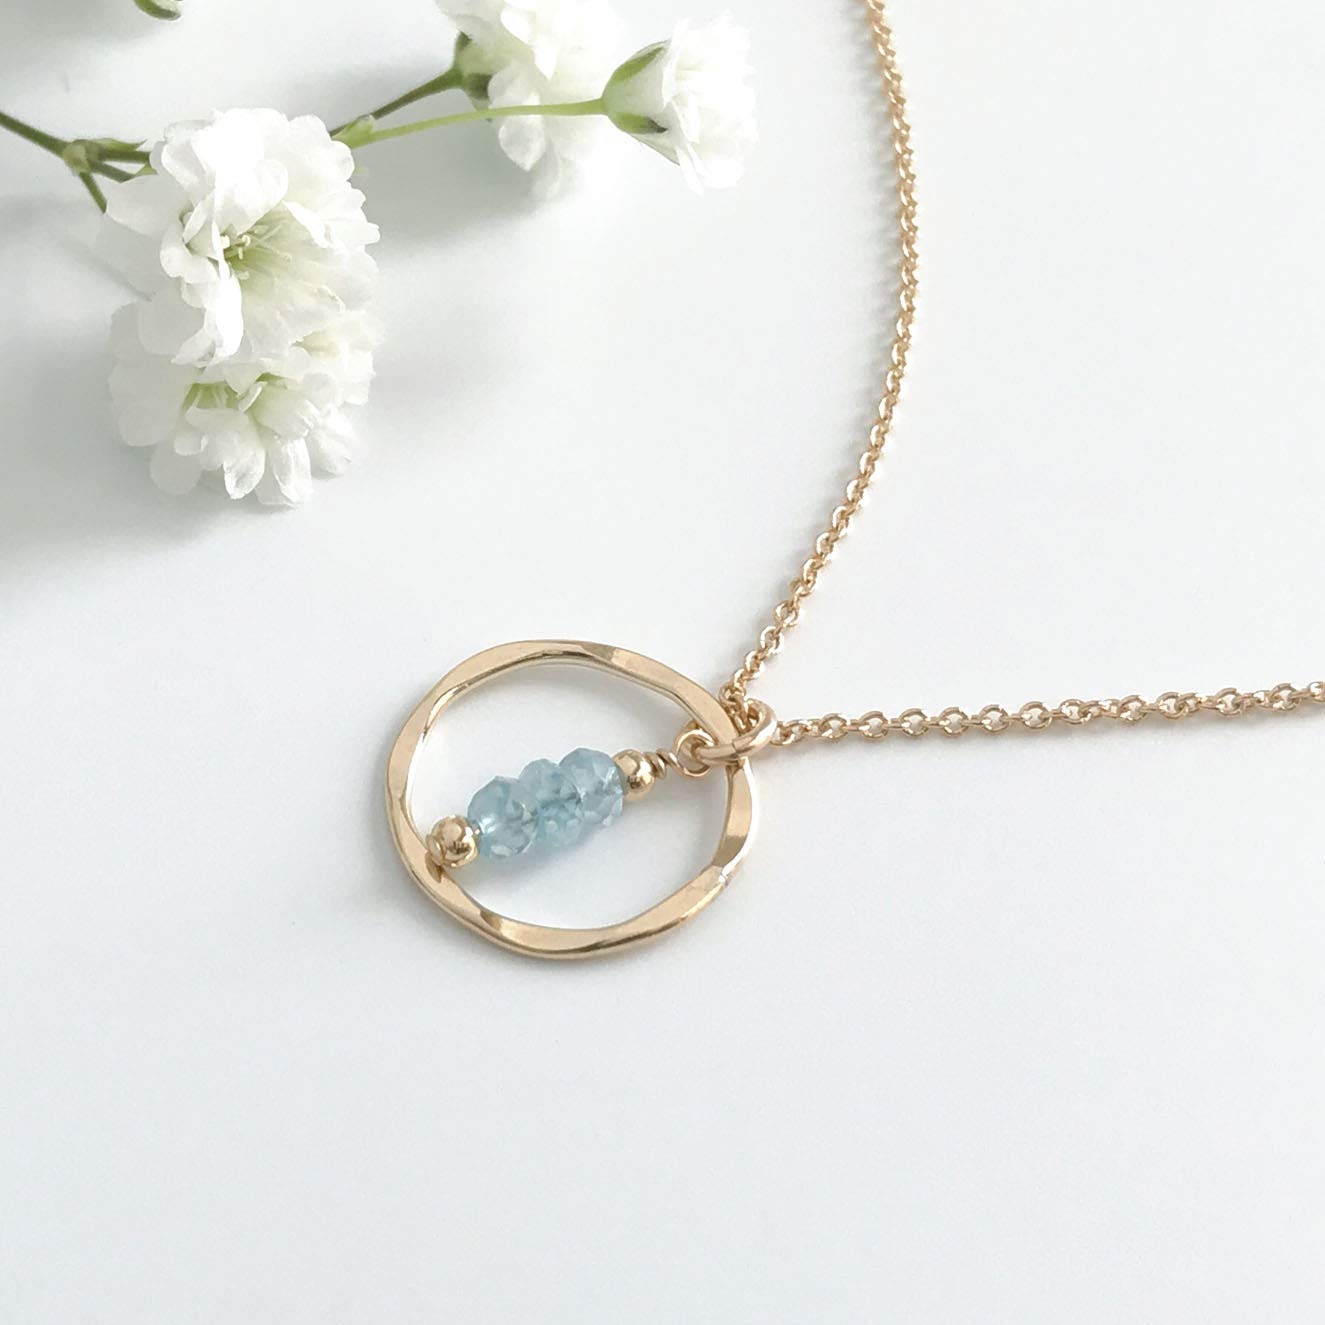 f1ad7e13f Get Quotations · Aquamarine Gold Circle Necklace - March Birthstone